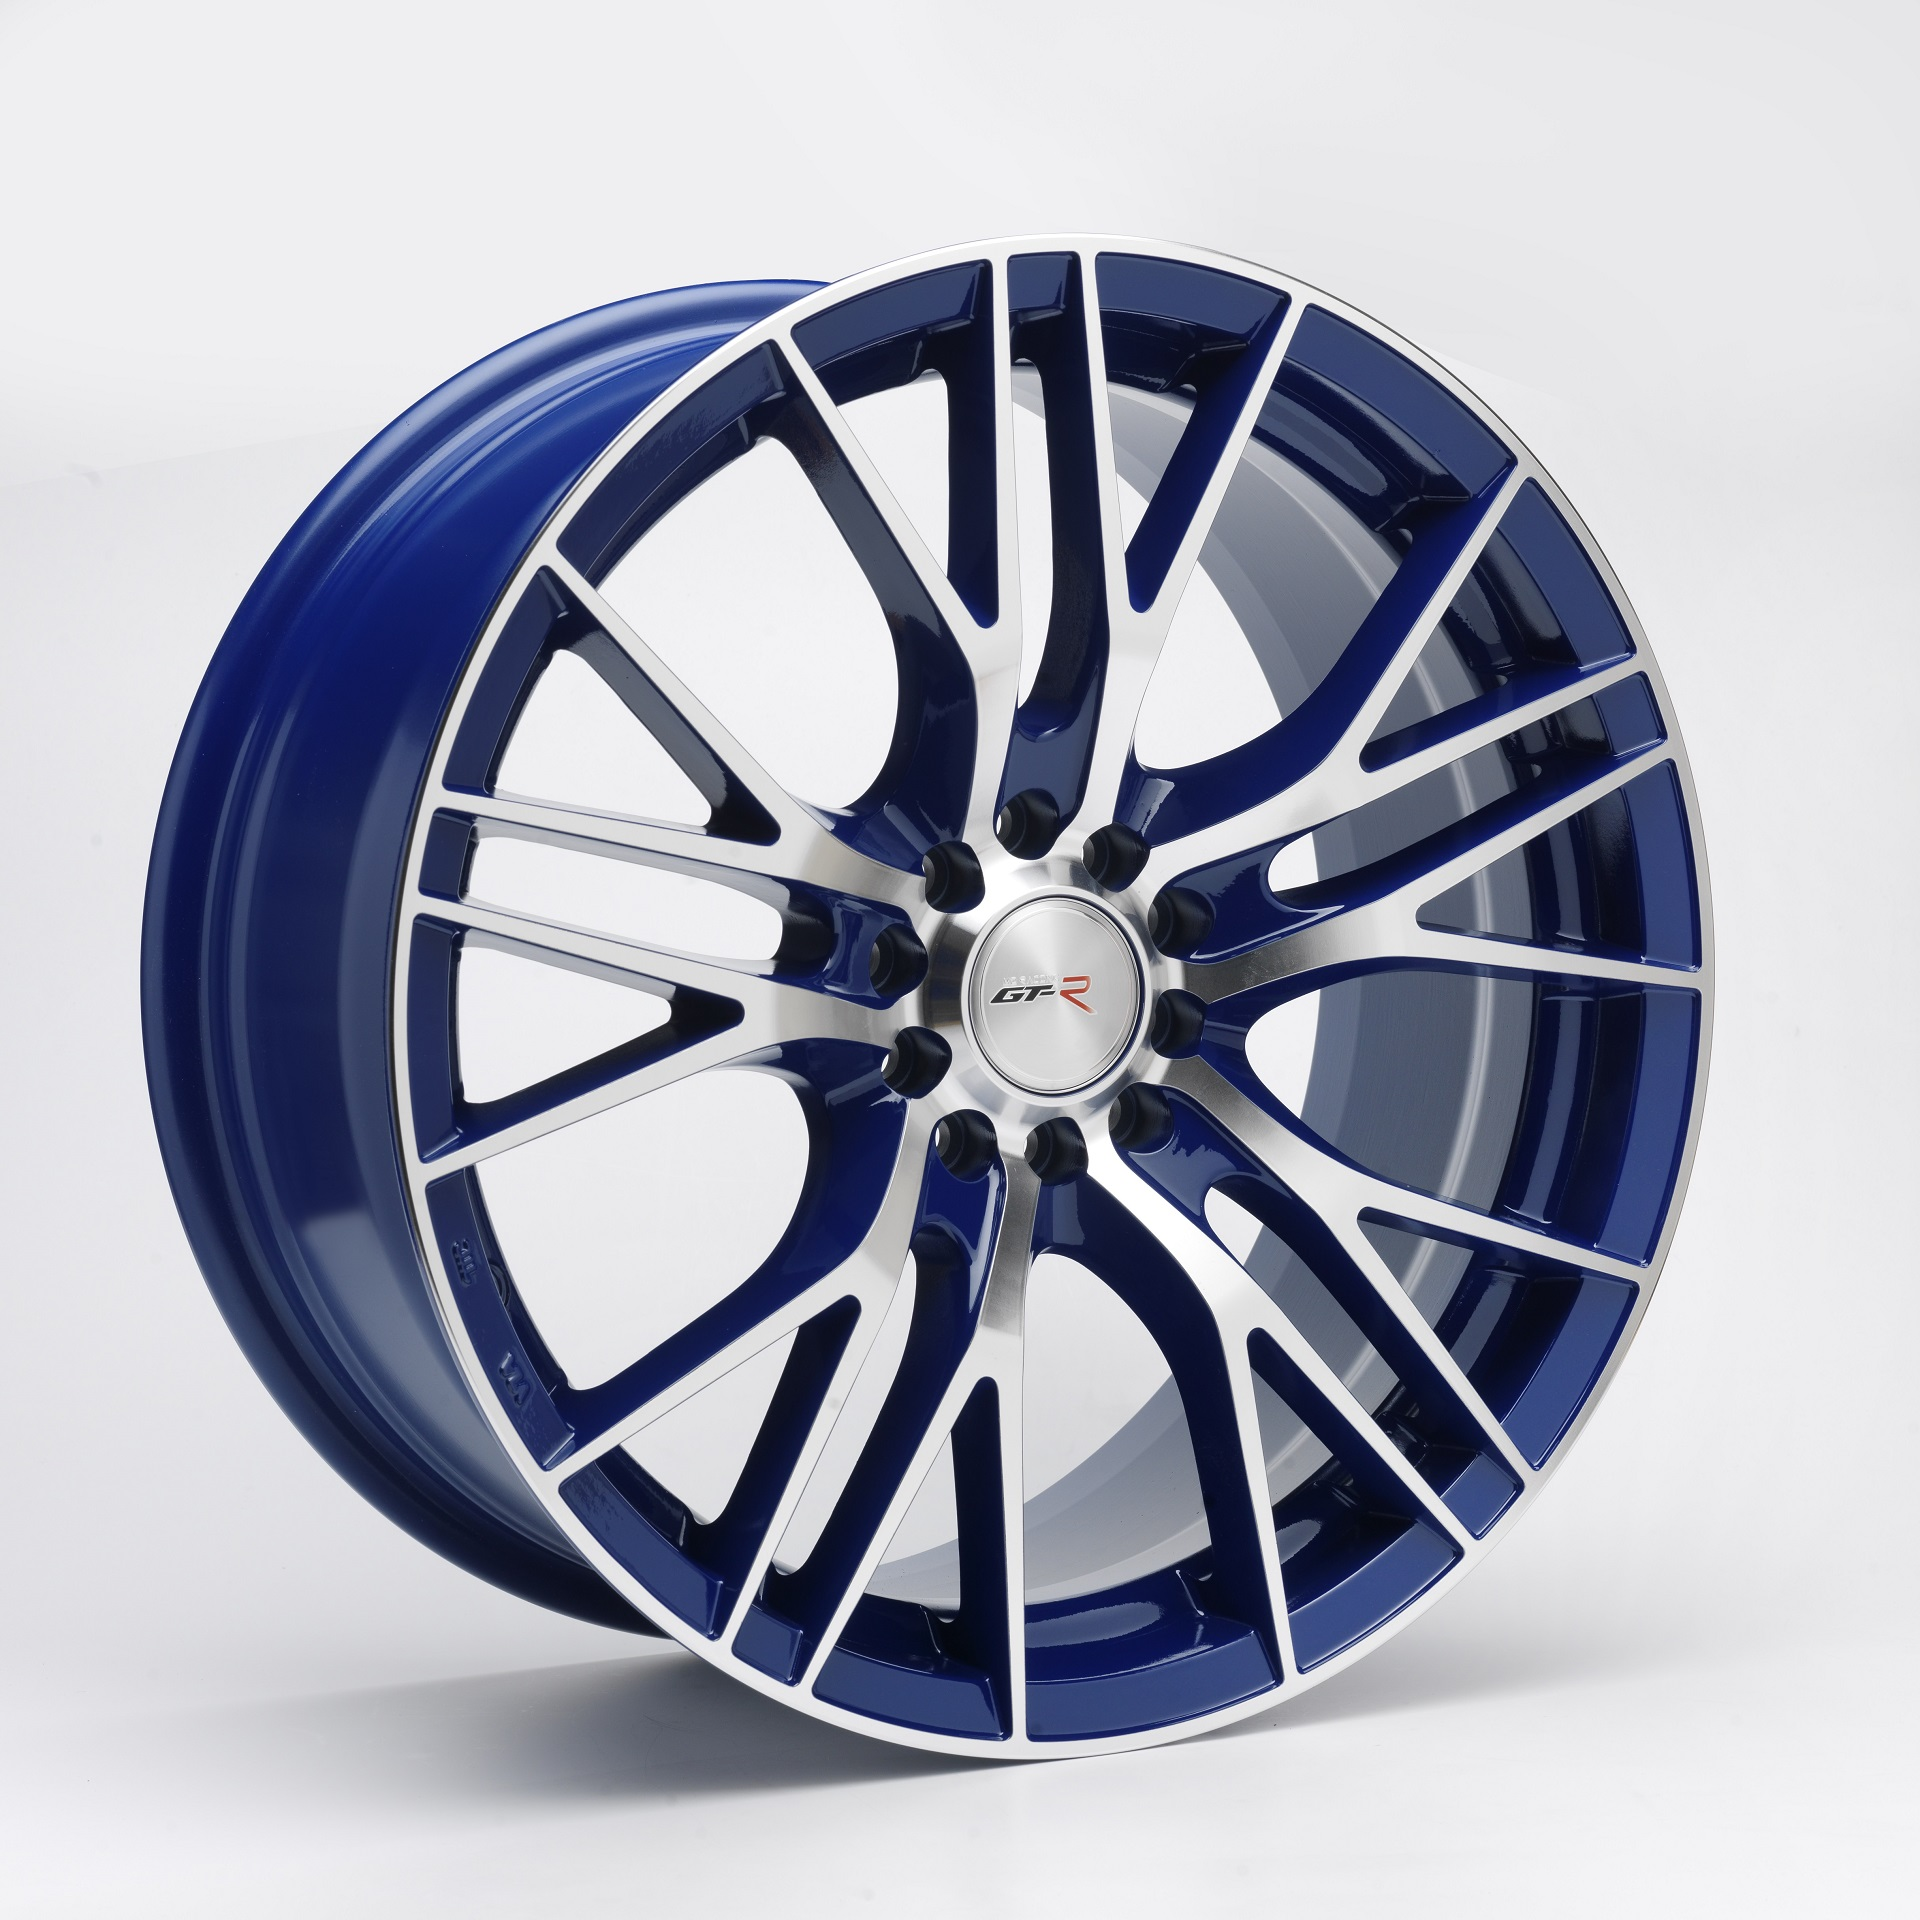 GT-R 5X112 6.5X15 ET38 73.1 TOP BLUE